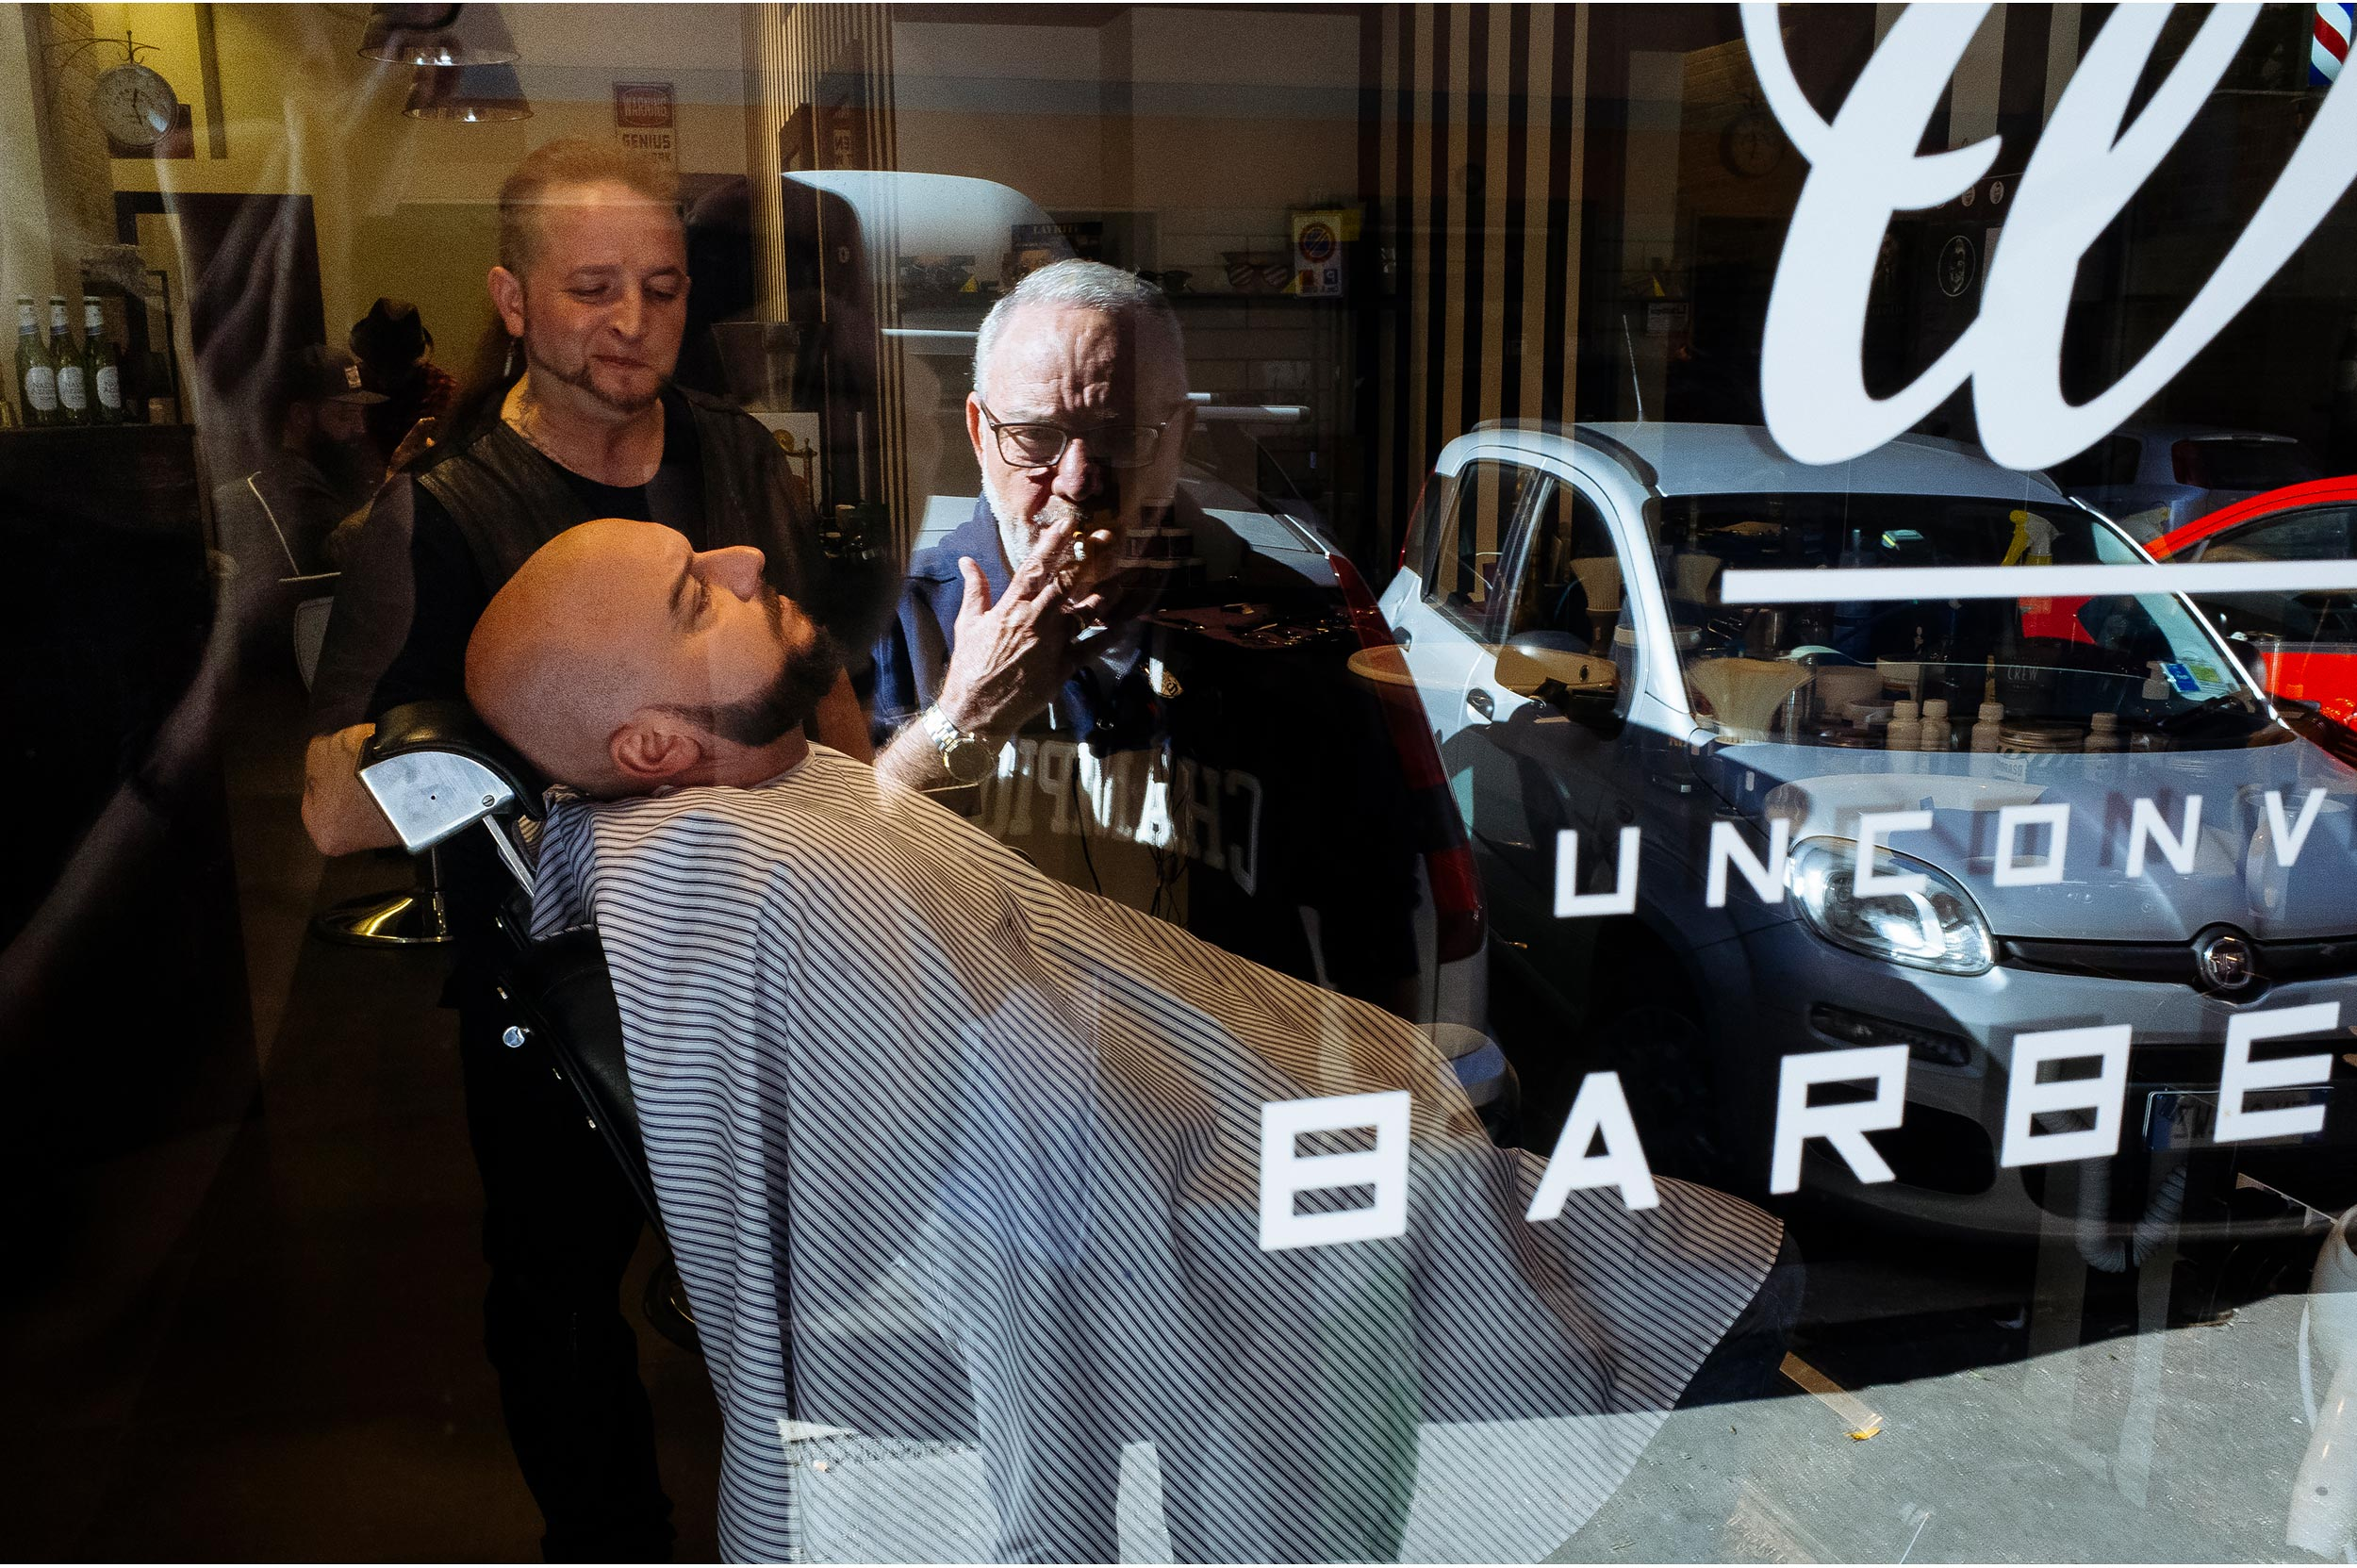 groom-getting-ready-in-the-barbershop-while-his-dad-watches-outside.jpg